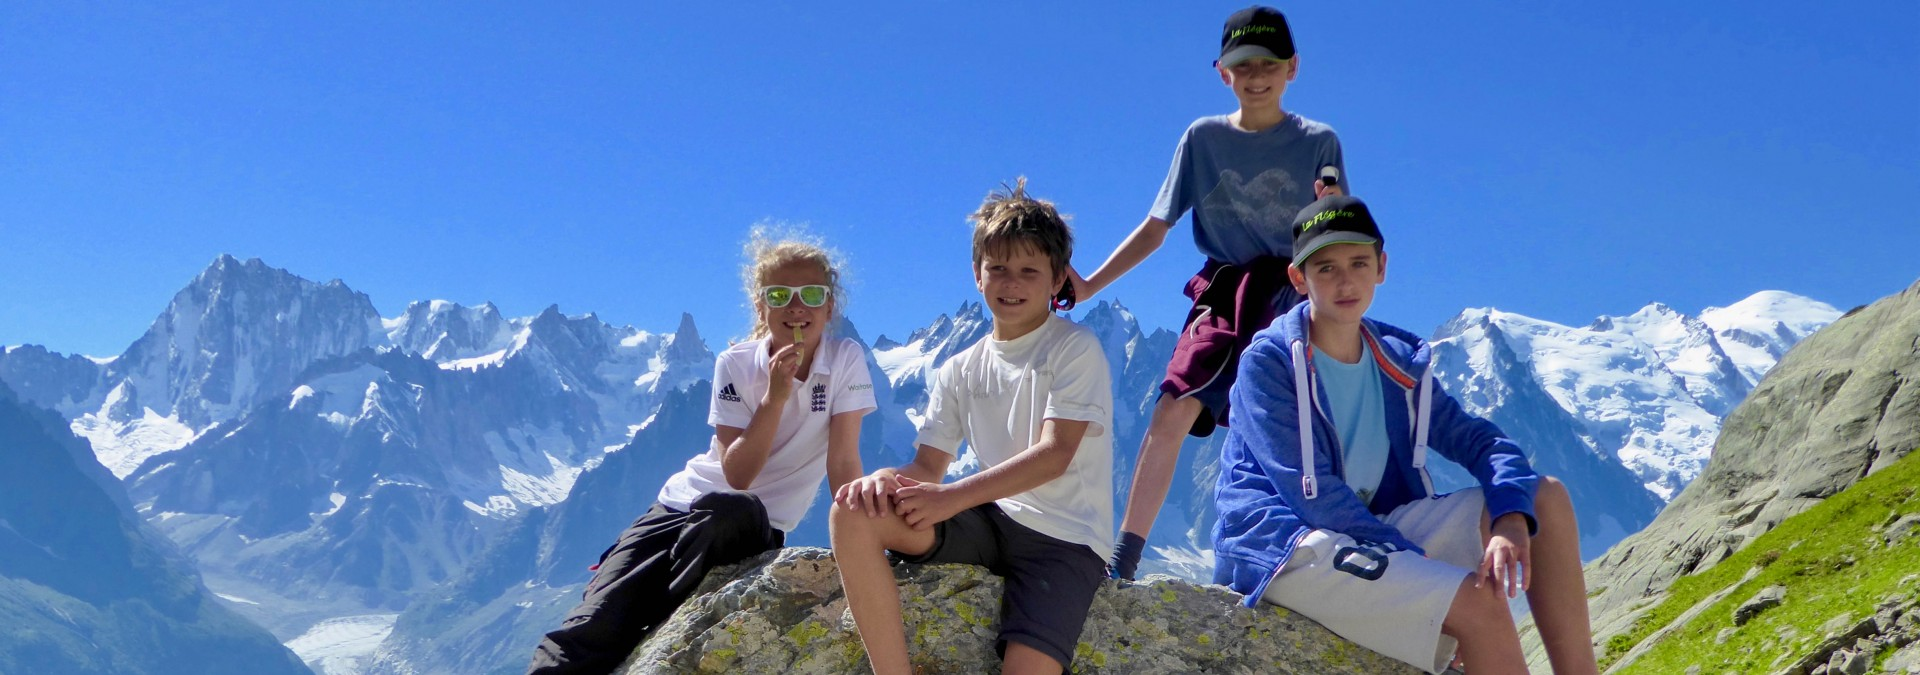 Chamonix Family Adventure